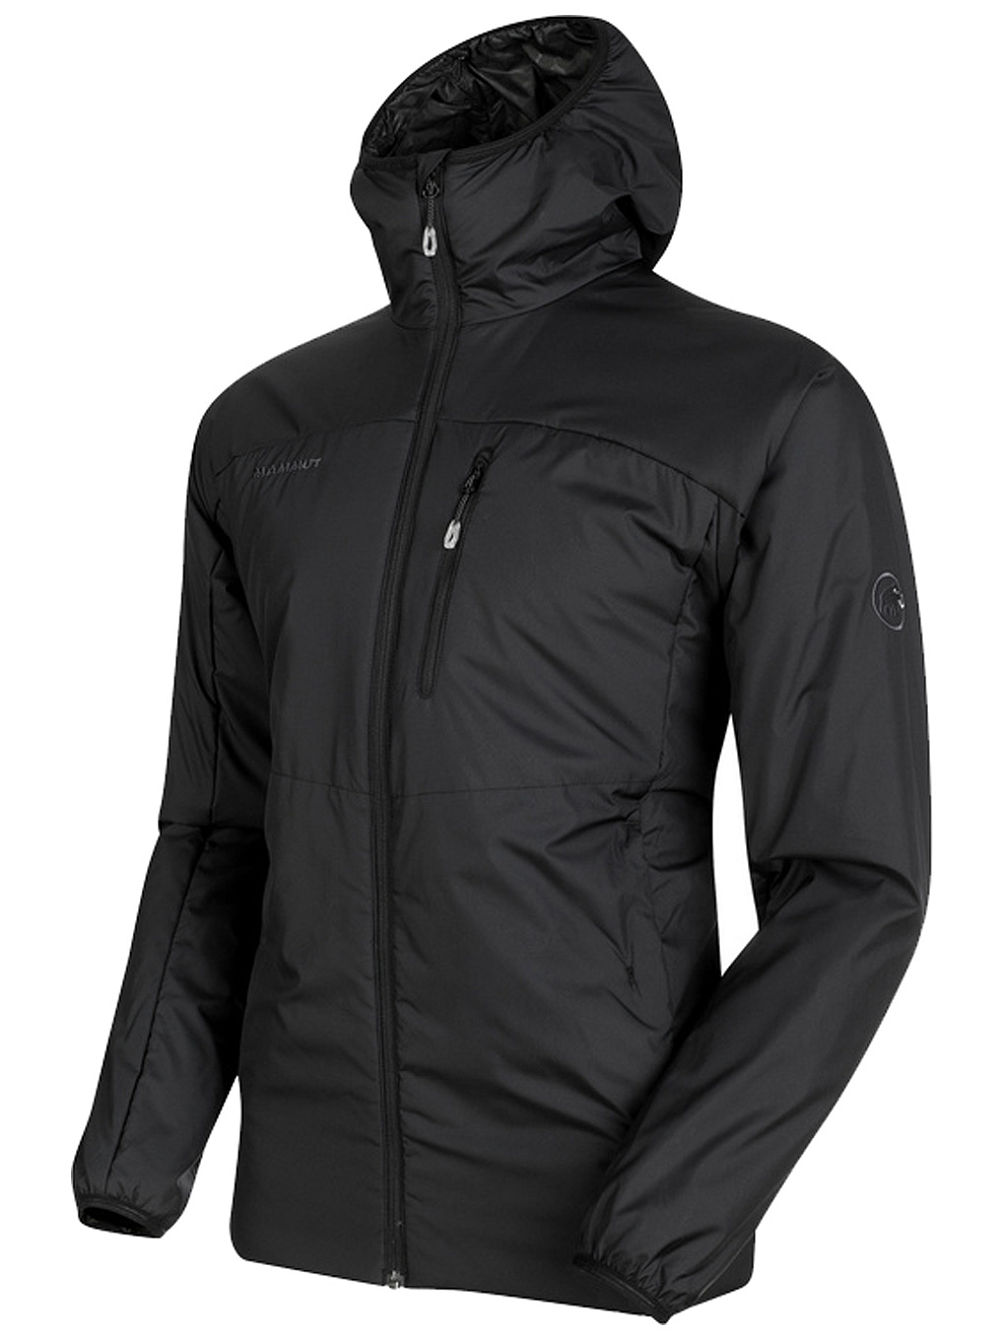 Runbold Advanced In Outdoor Jacket